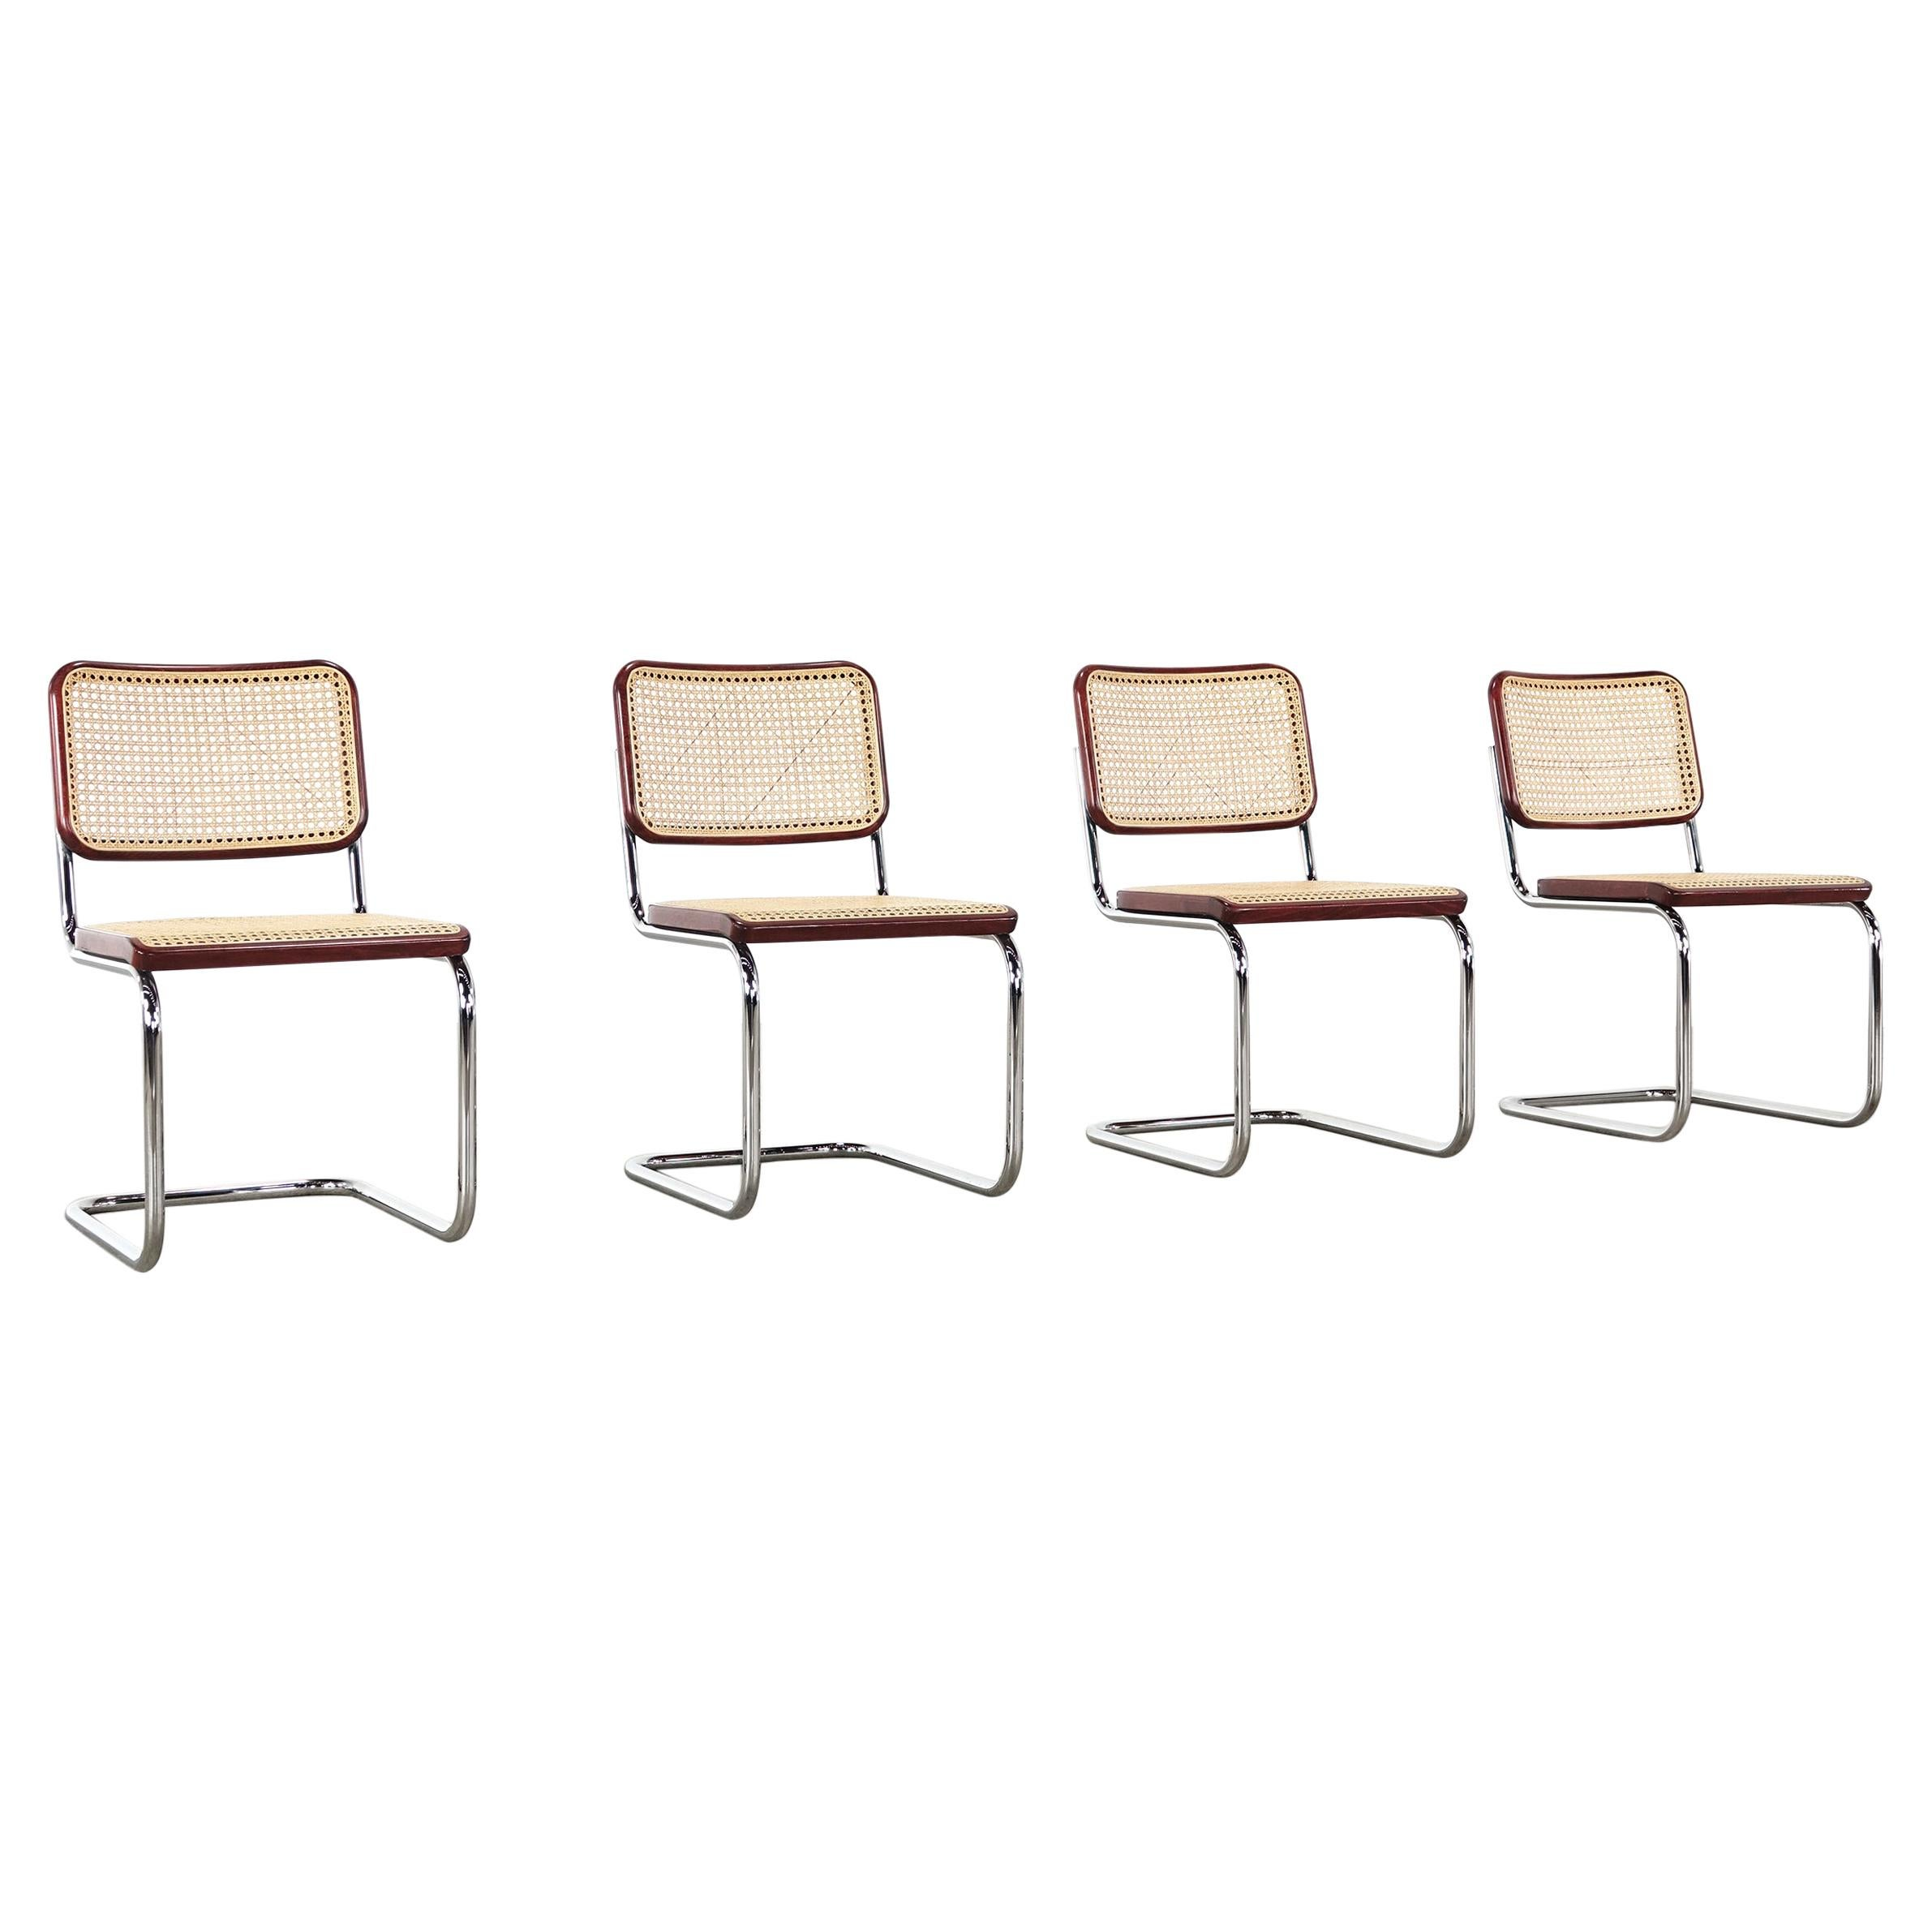 Marcel Breuer 4 Cantilever Chairs 'S32' for Thonet